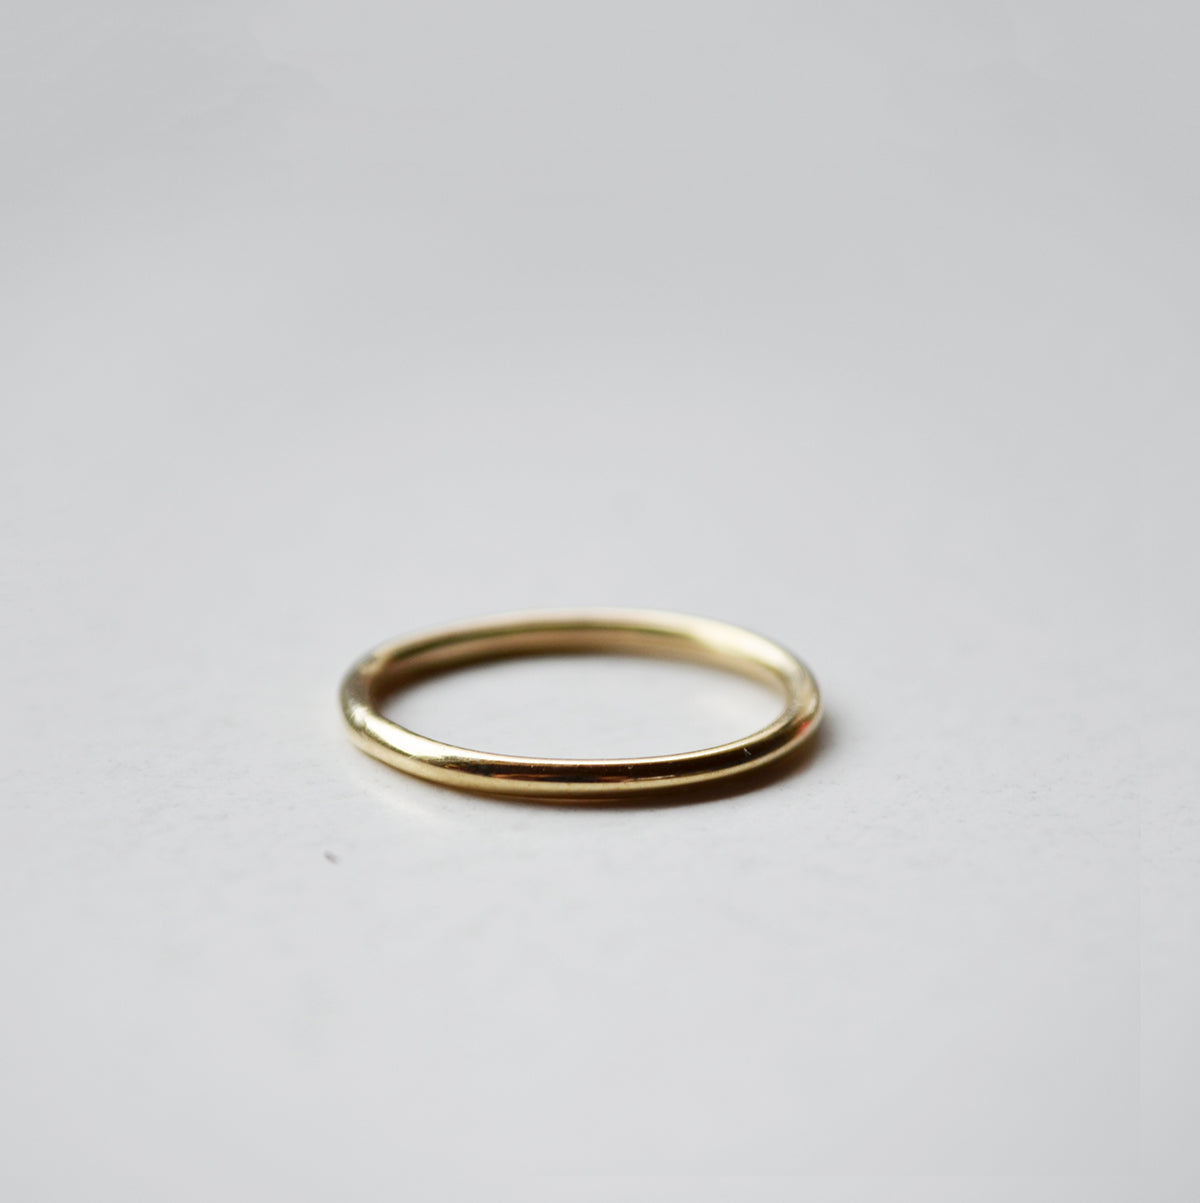 Plain ring - 14K GOLD